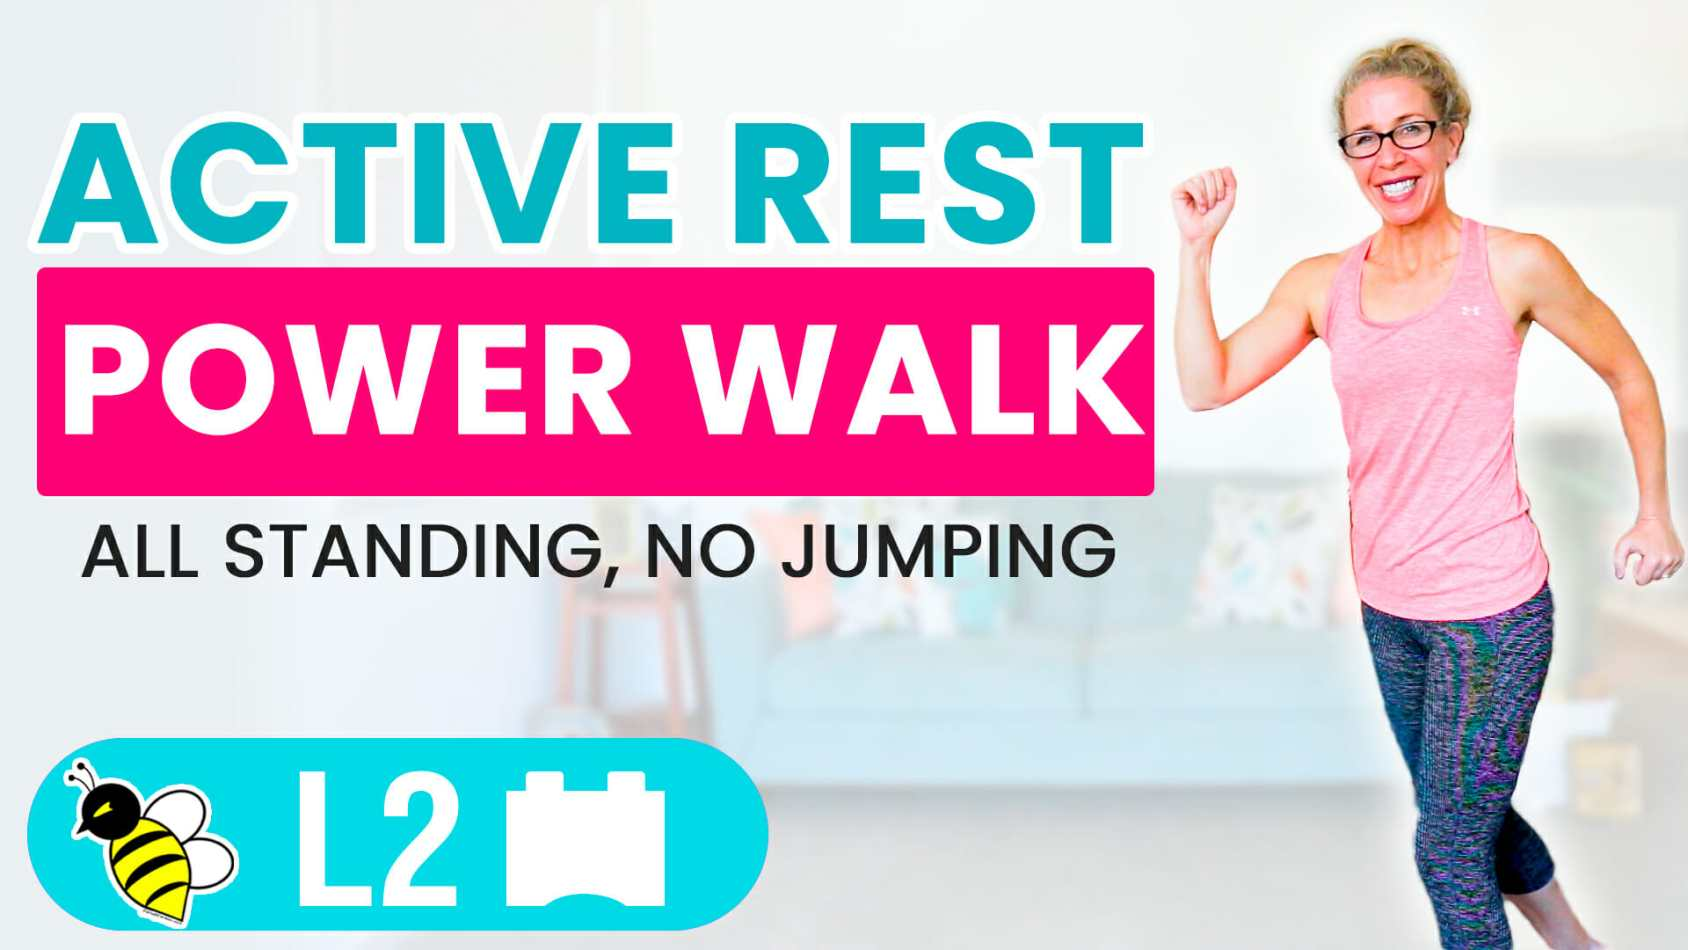 Active Rest Day 10 minute POWER WALK workout